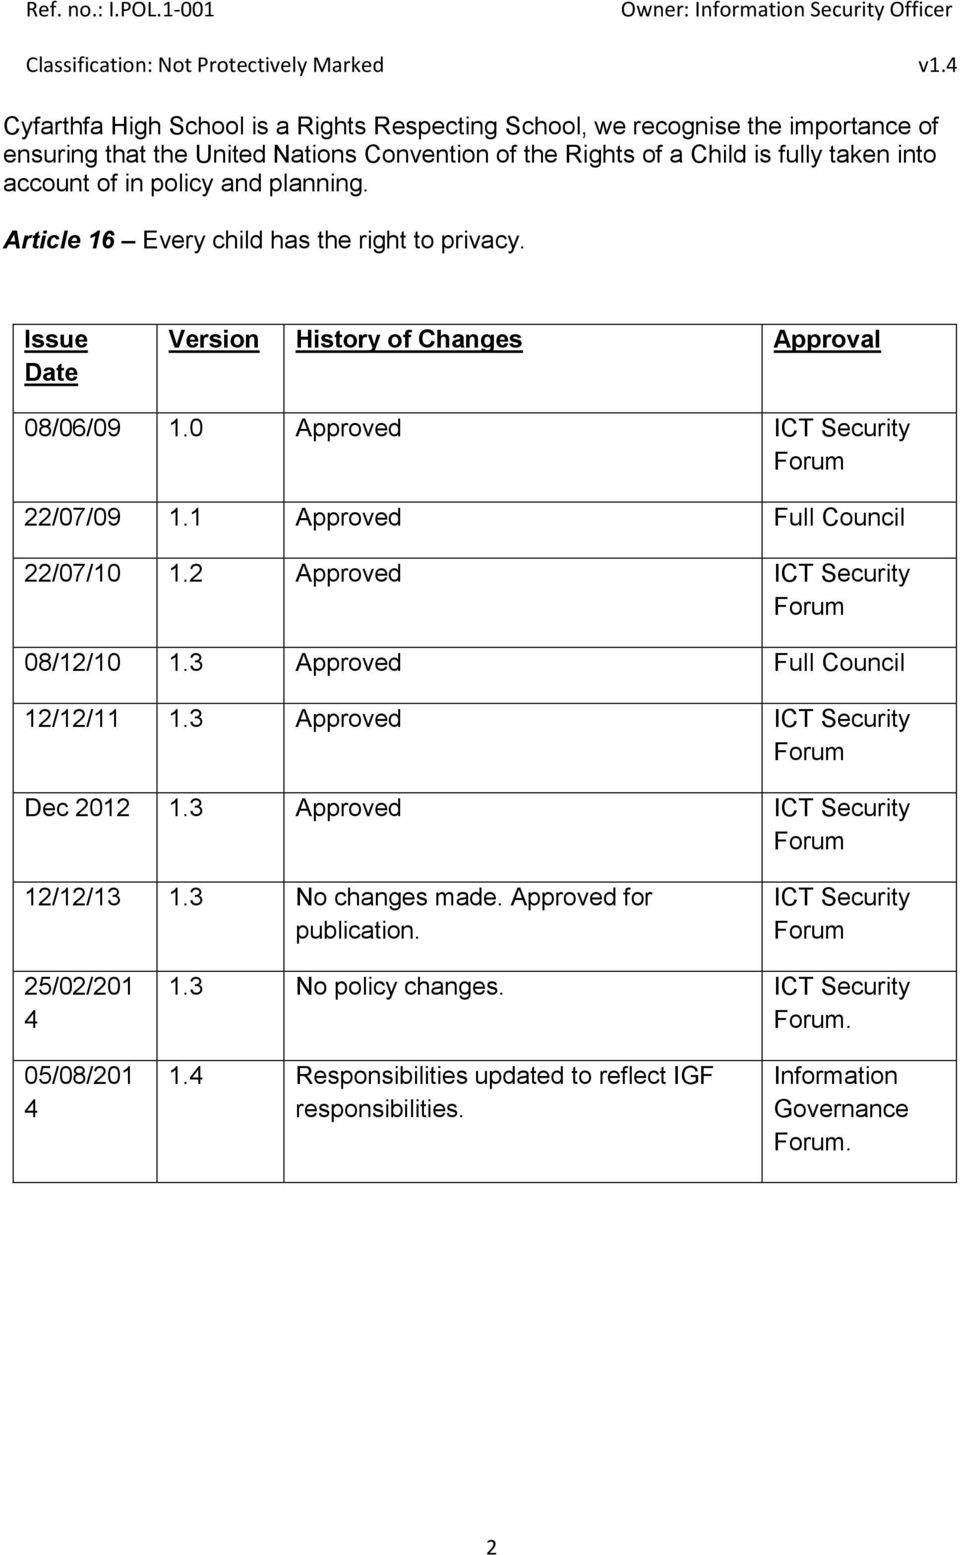 1 Approved Full Council 22/07/10 1.2 Approved ICT Security 08/12/10 1.3 Approved Full Council 12/12/11 1.3 Approved ICT Security Dec 2012 1.3 Approved ICT Security 12/12/13 1.